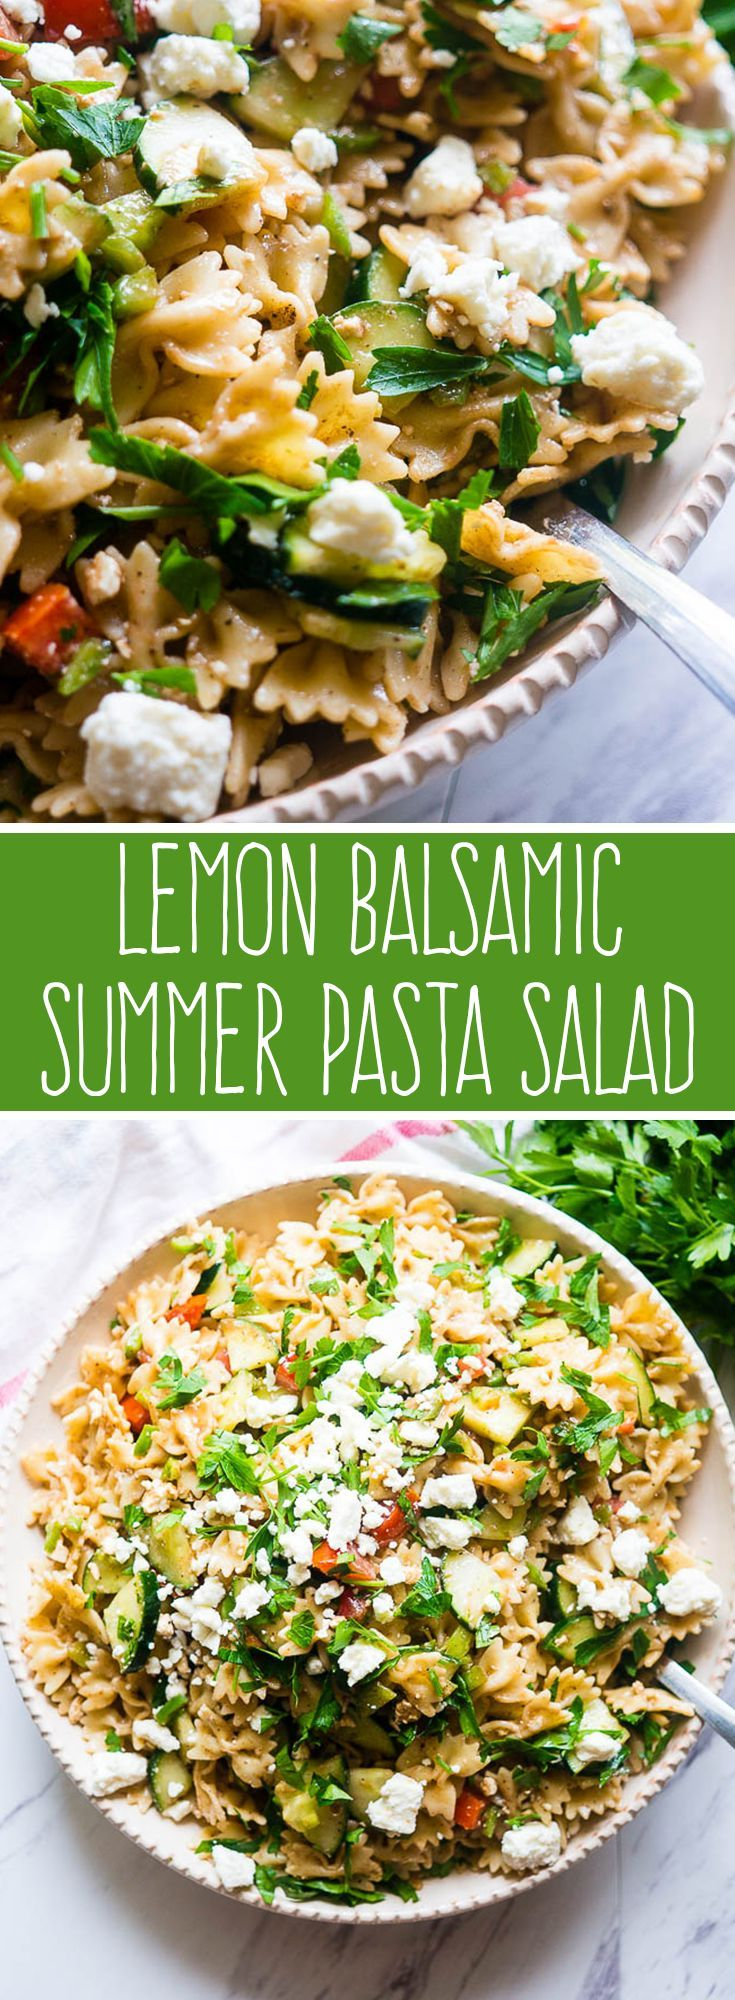 Lemon Balsamic Summer Pasta Salad